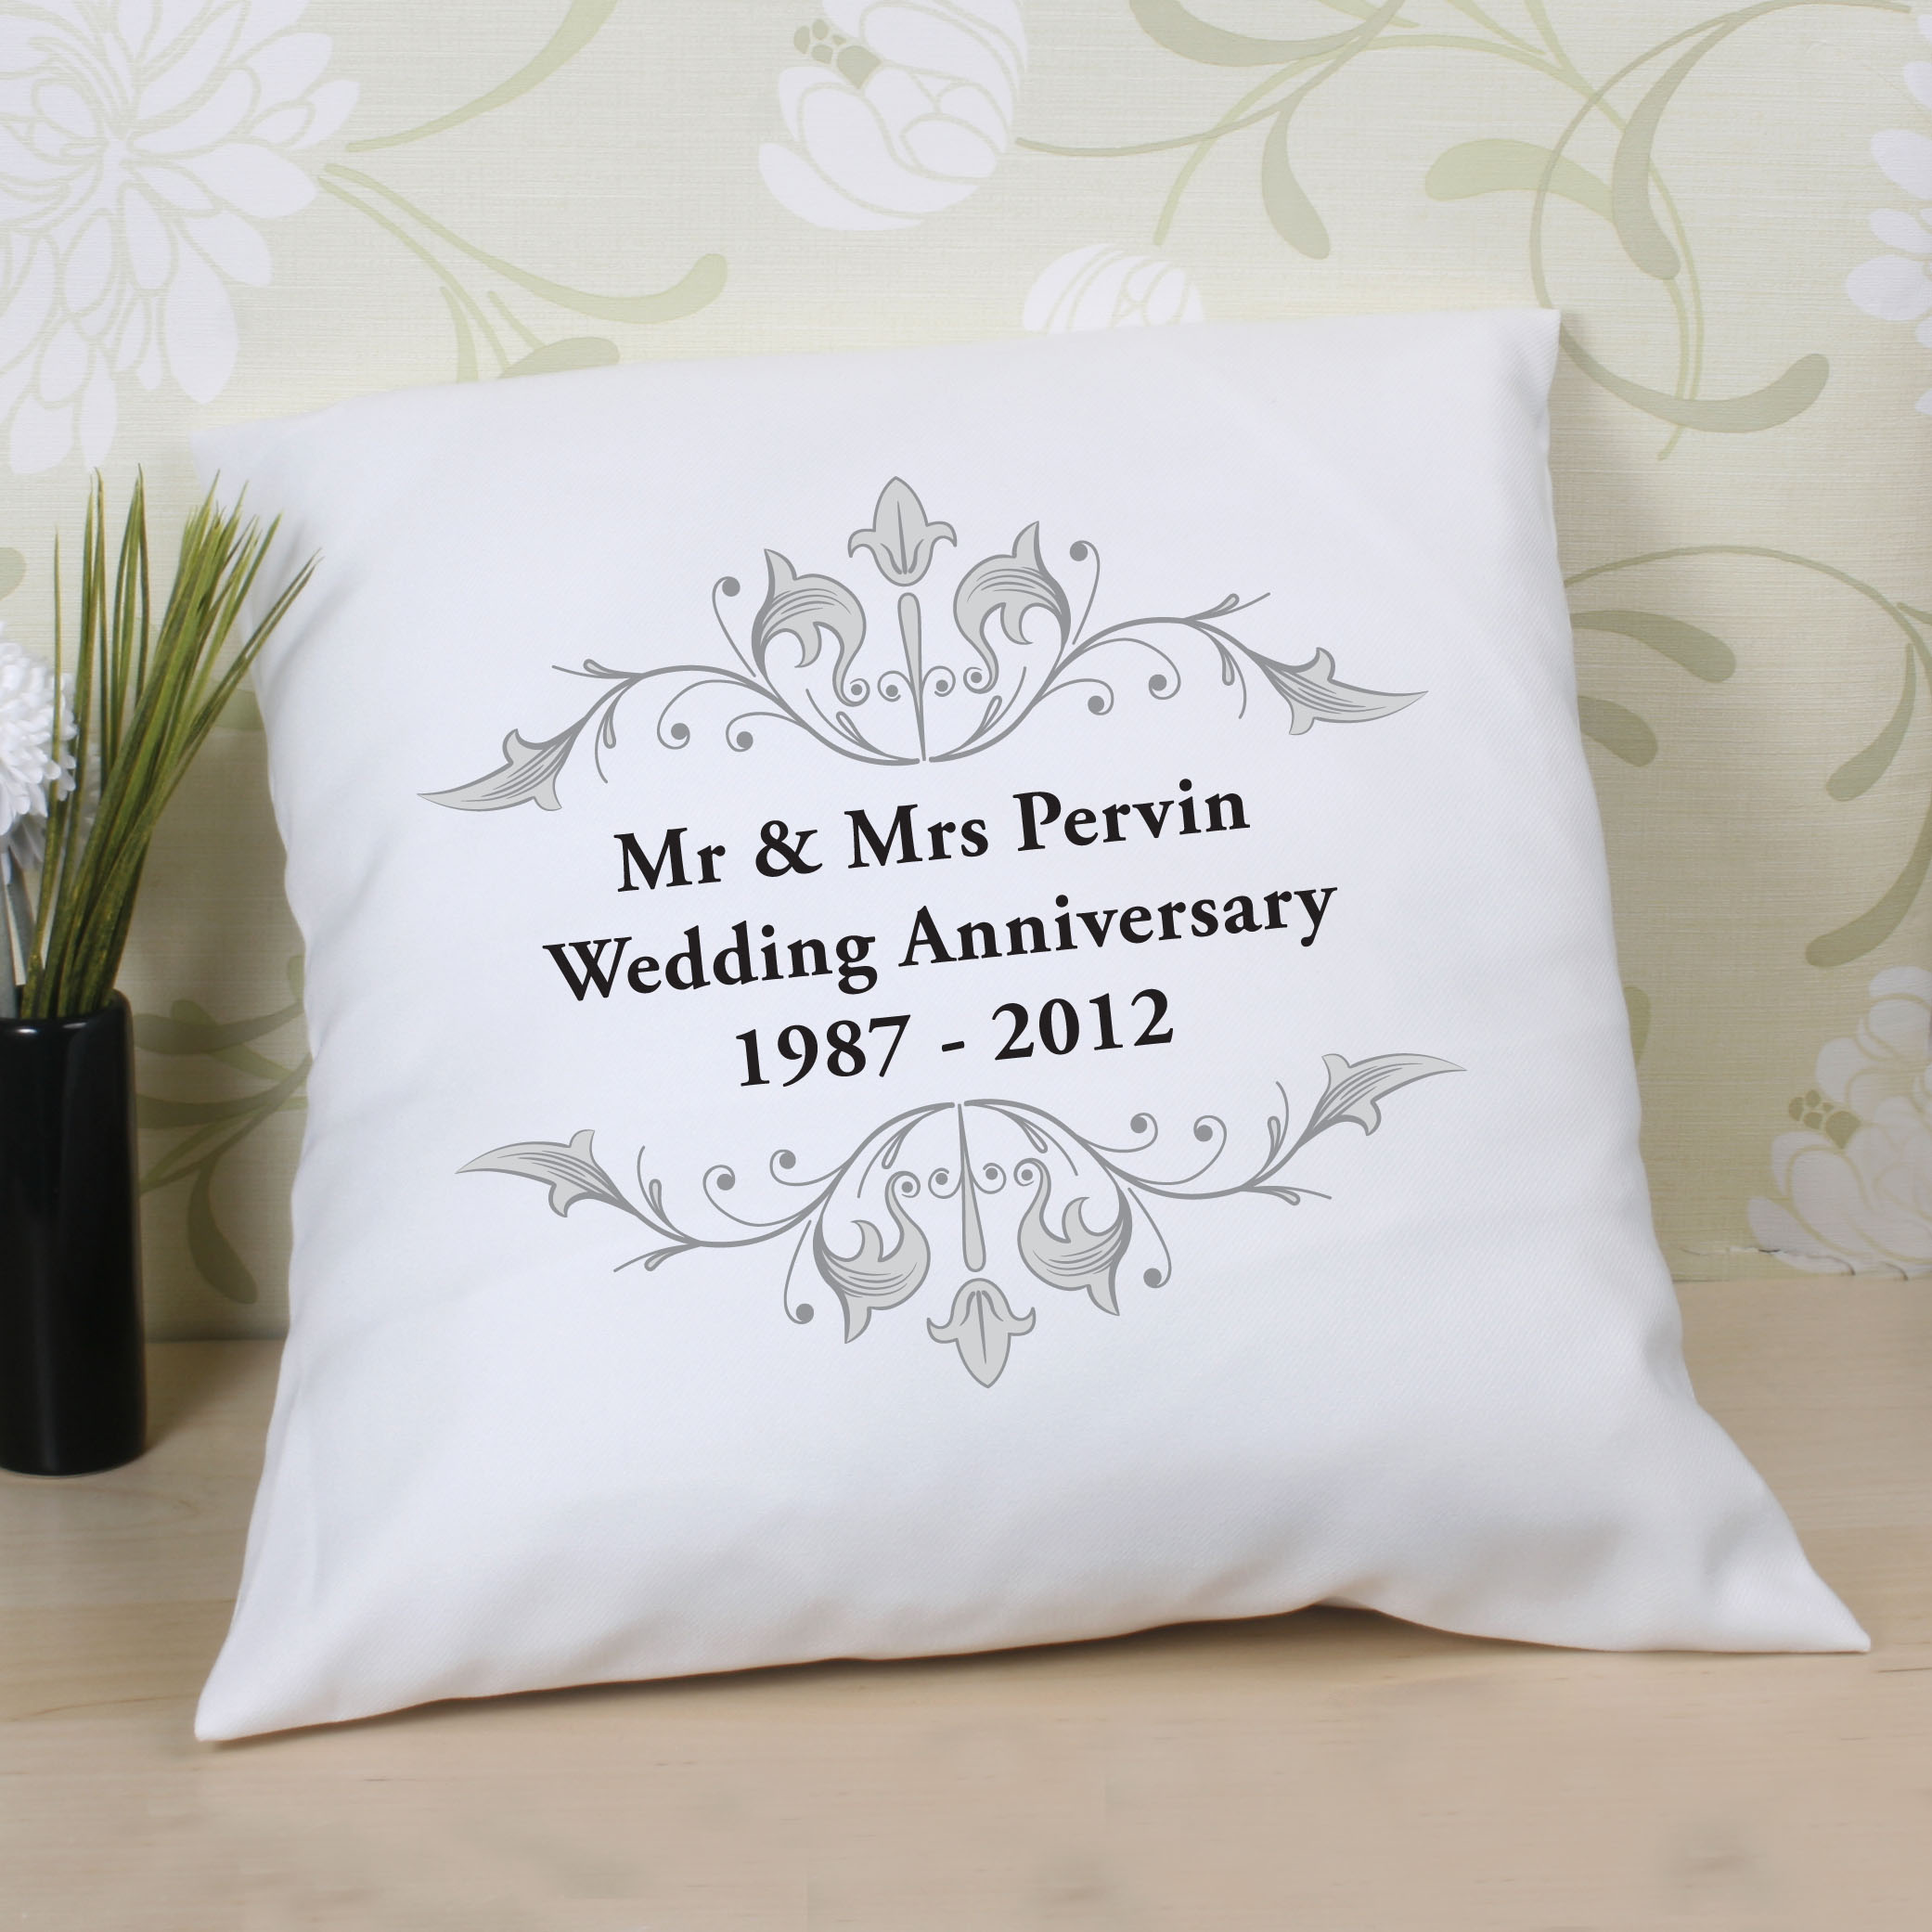 Wedding Anniversary Gift Ideas For Him Uk : Wedding Anniversary Gifts: Cotton Wedding Anniversary Gifts For Him Uk